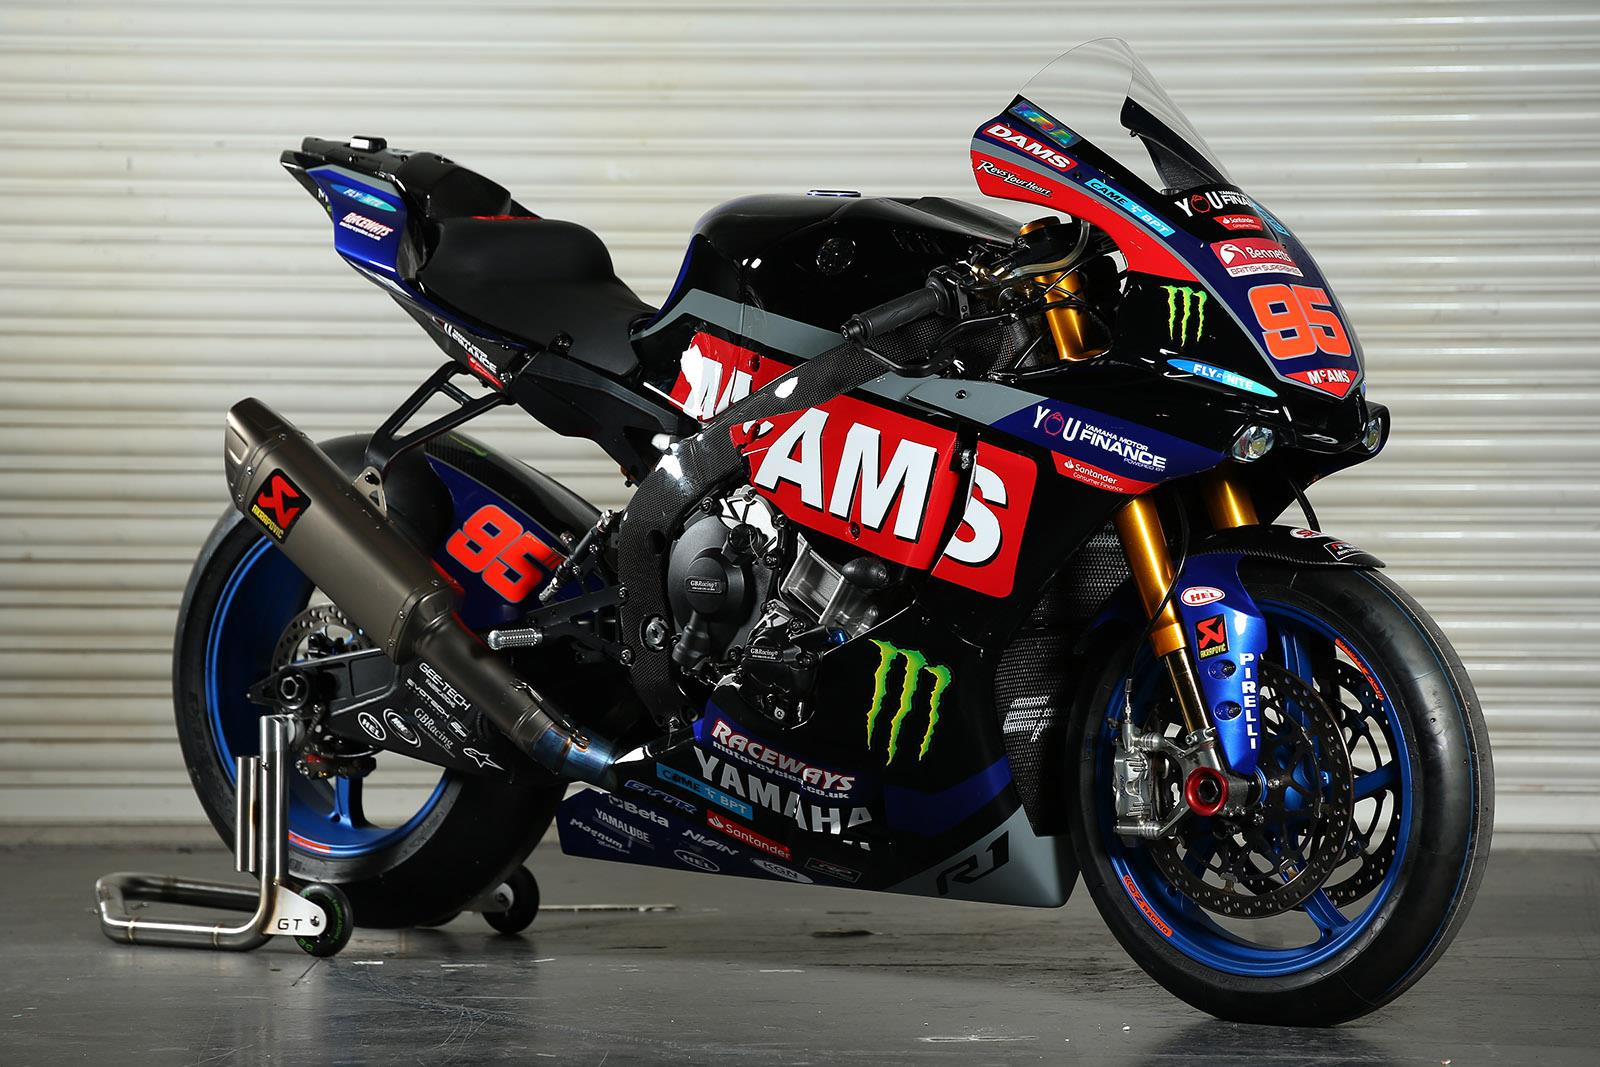 BSB: McAMS Yamaha unveil 2019 livery